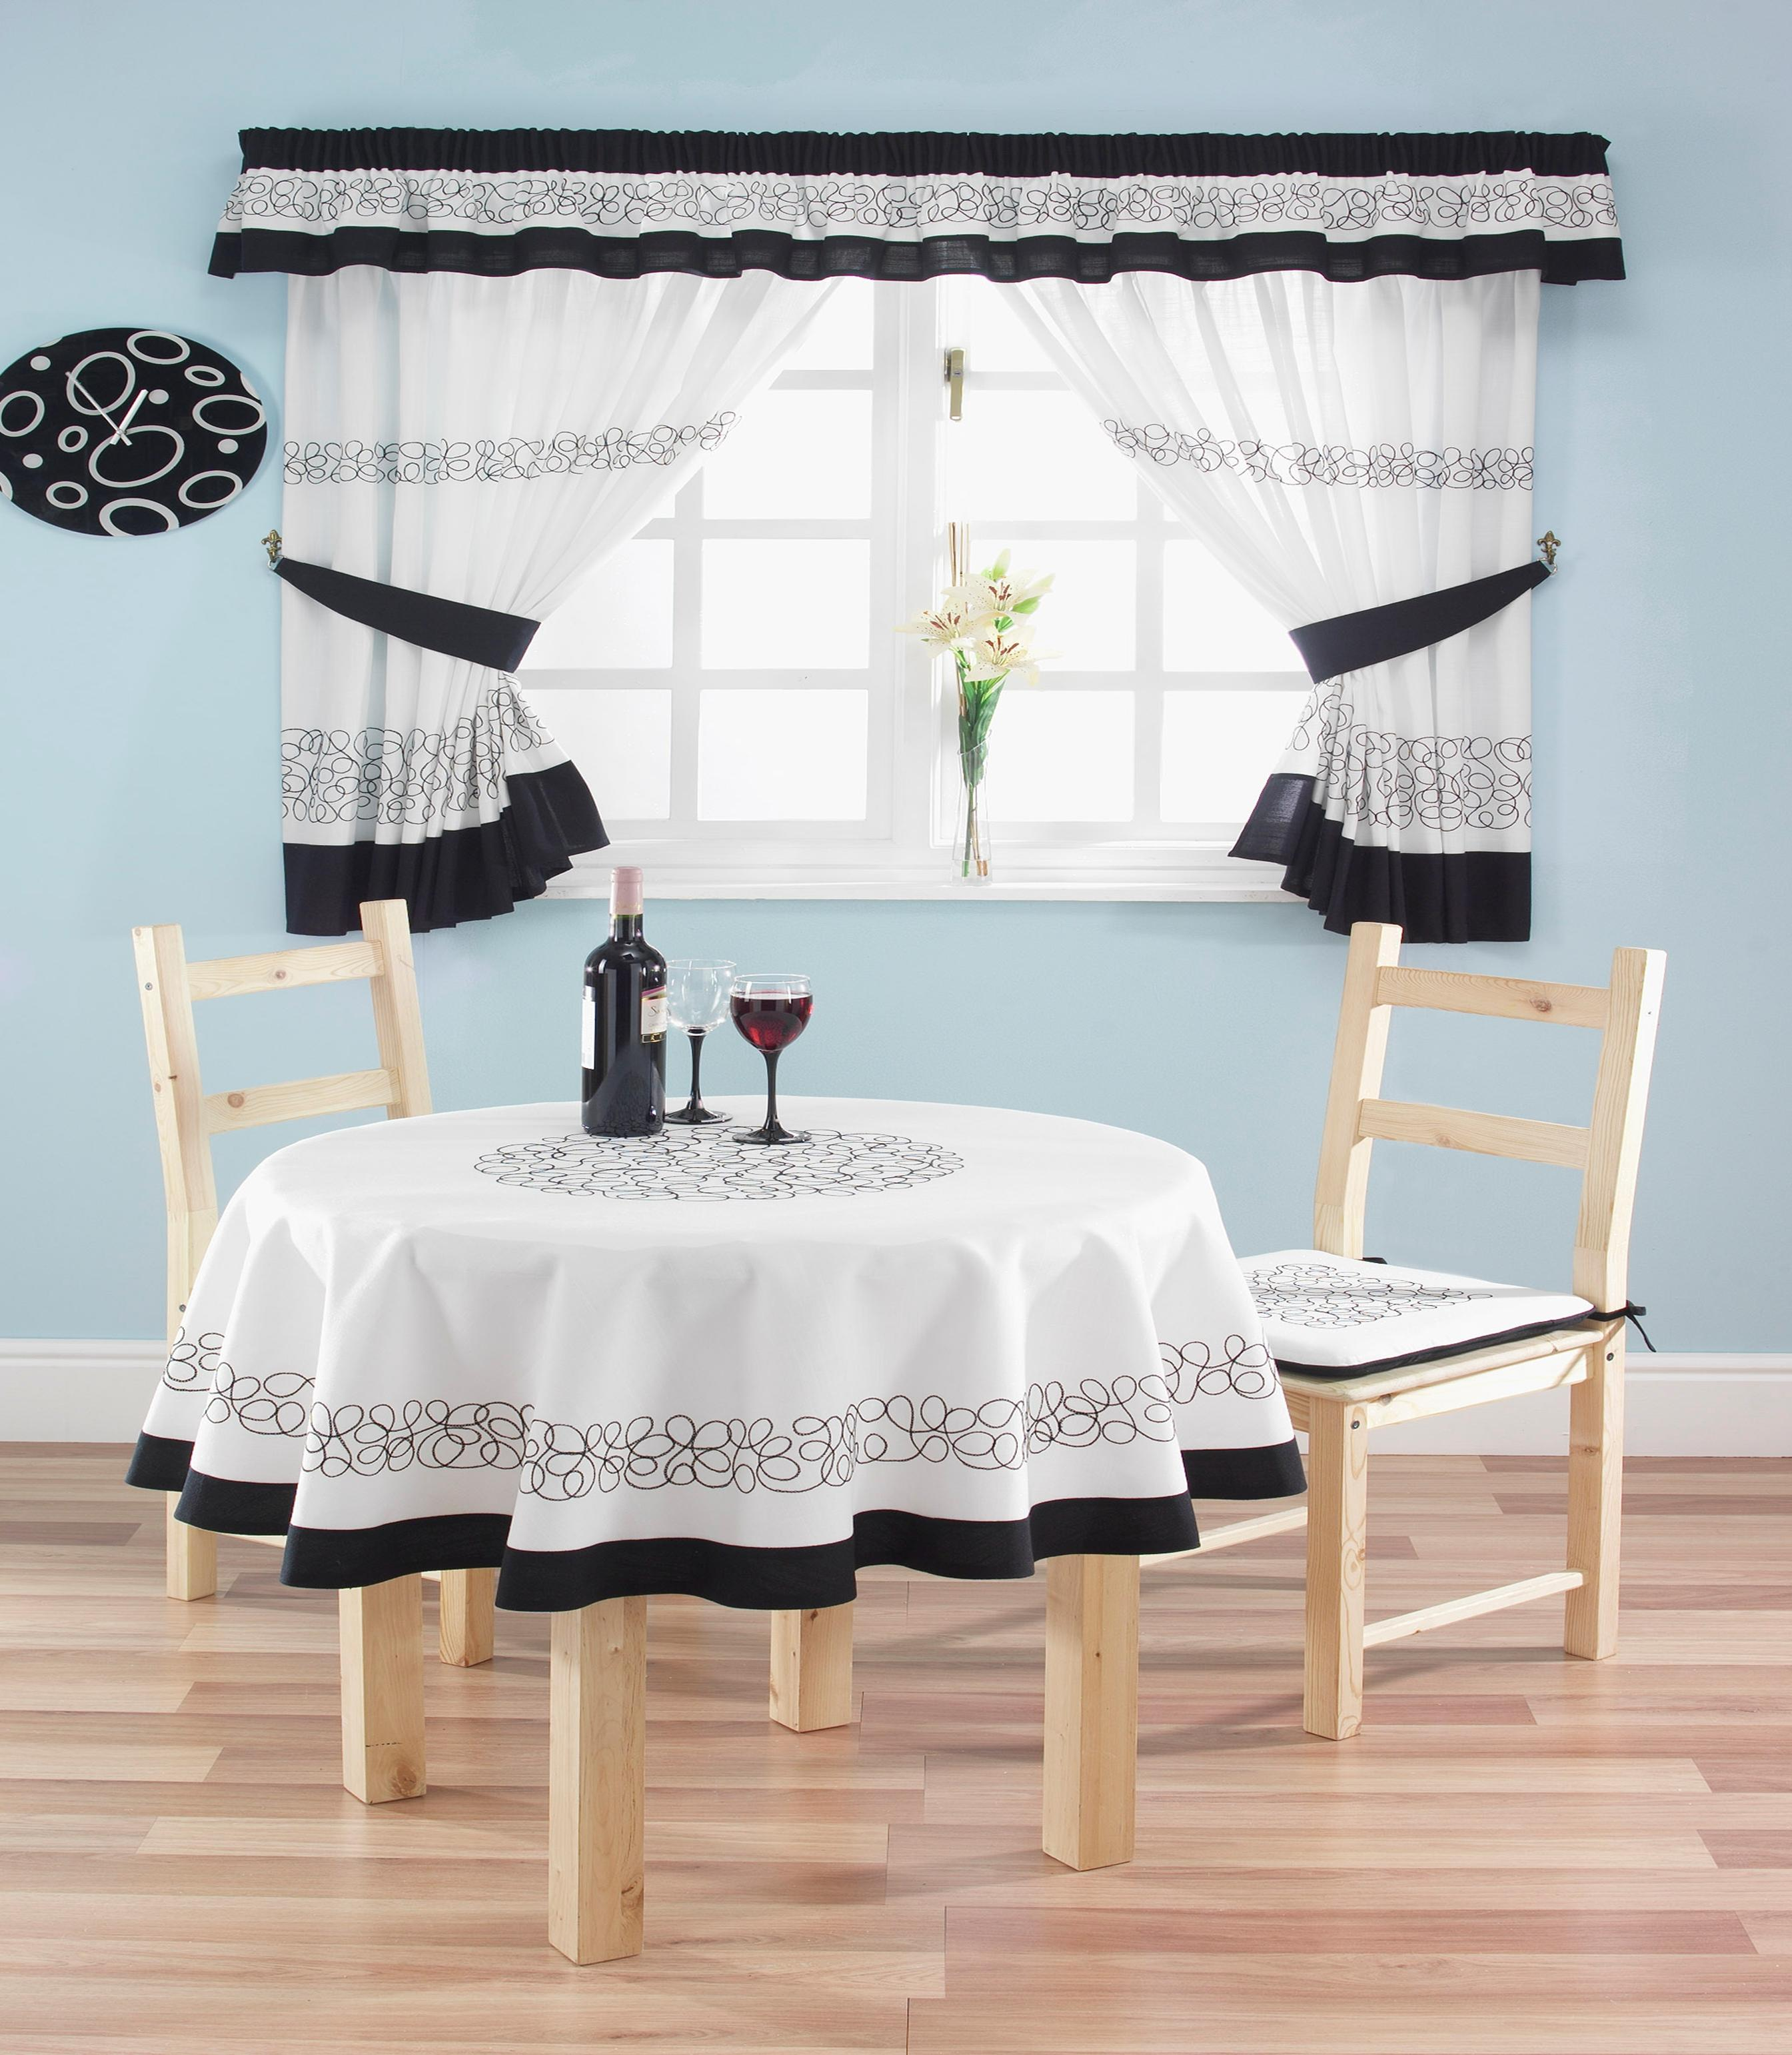 Buying Modern Kitchen Curtains For A Brand New Look Drapery Room Ideas